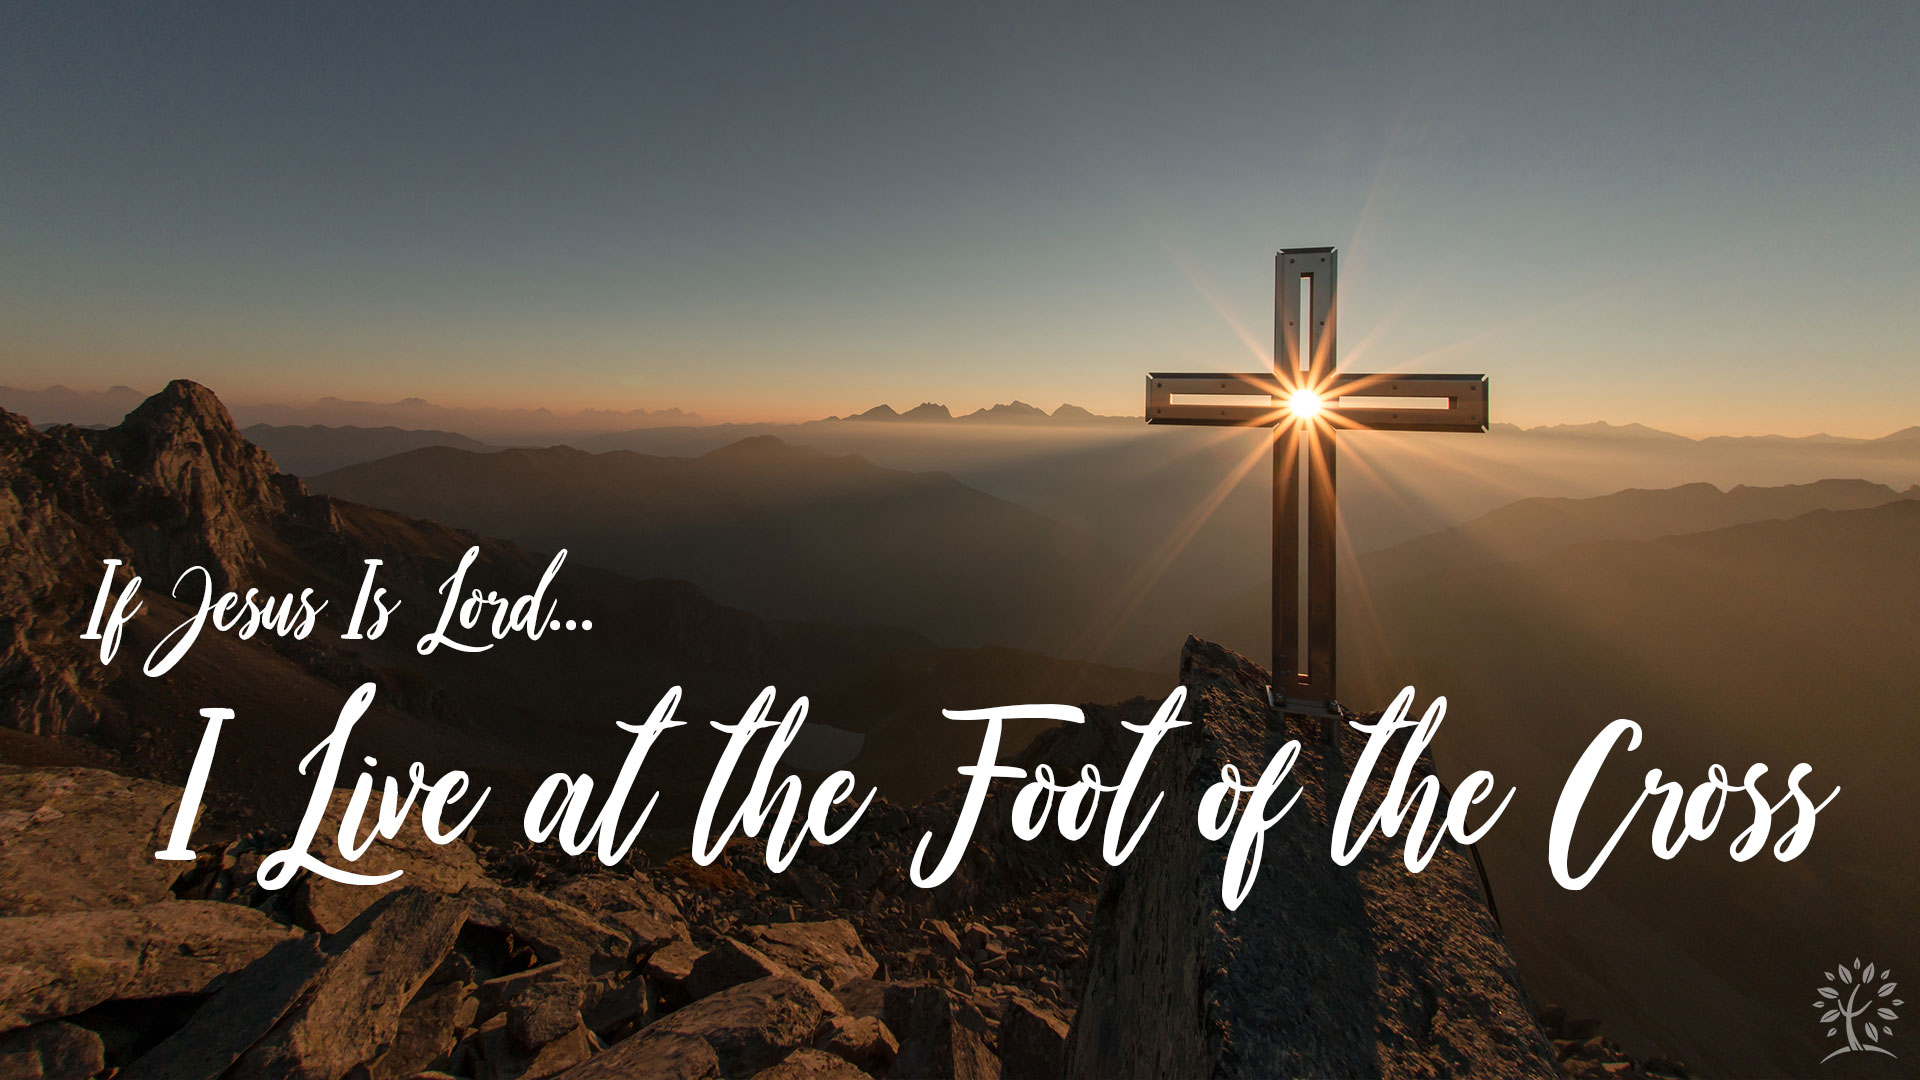 I Live at the Foot of the Cross